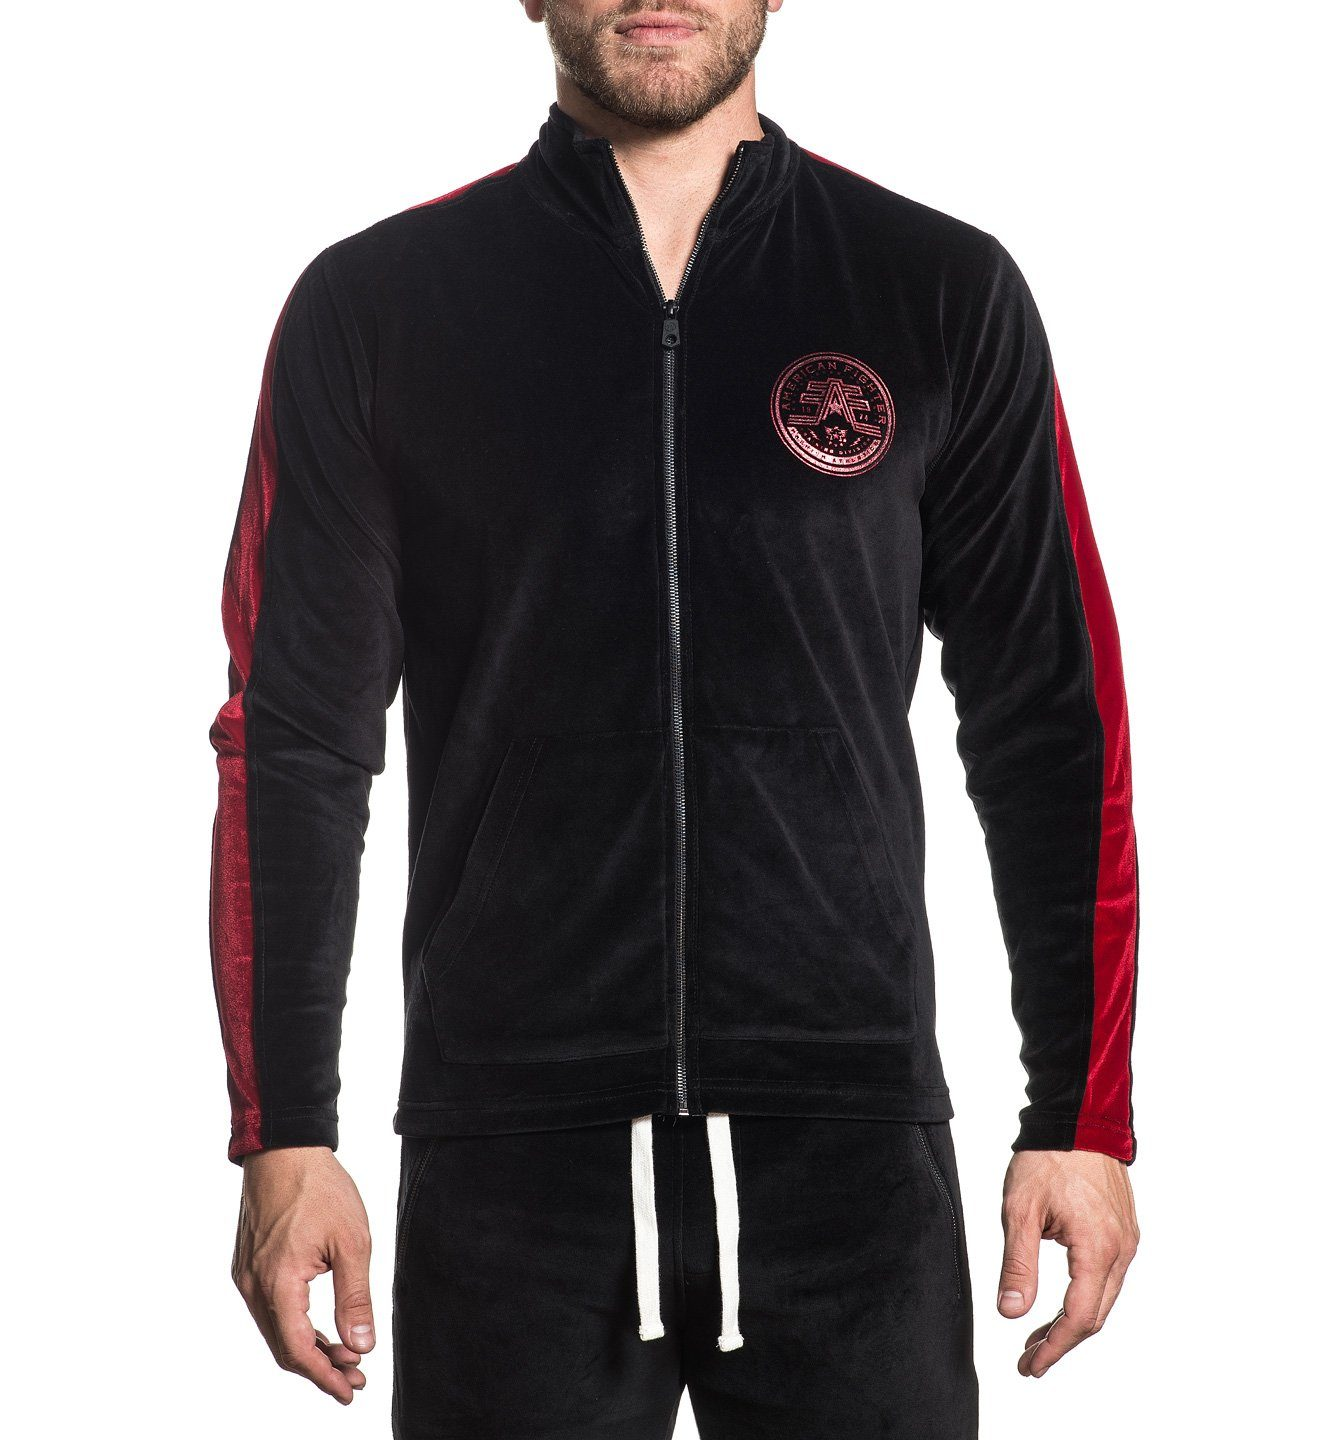 Striker Jacket - Mens Track Jackets And Pants - American Fighter